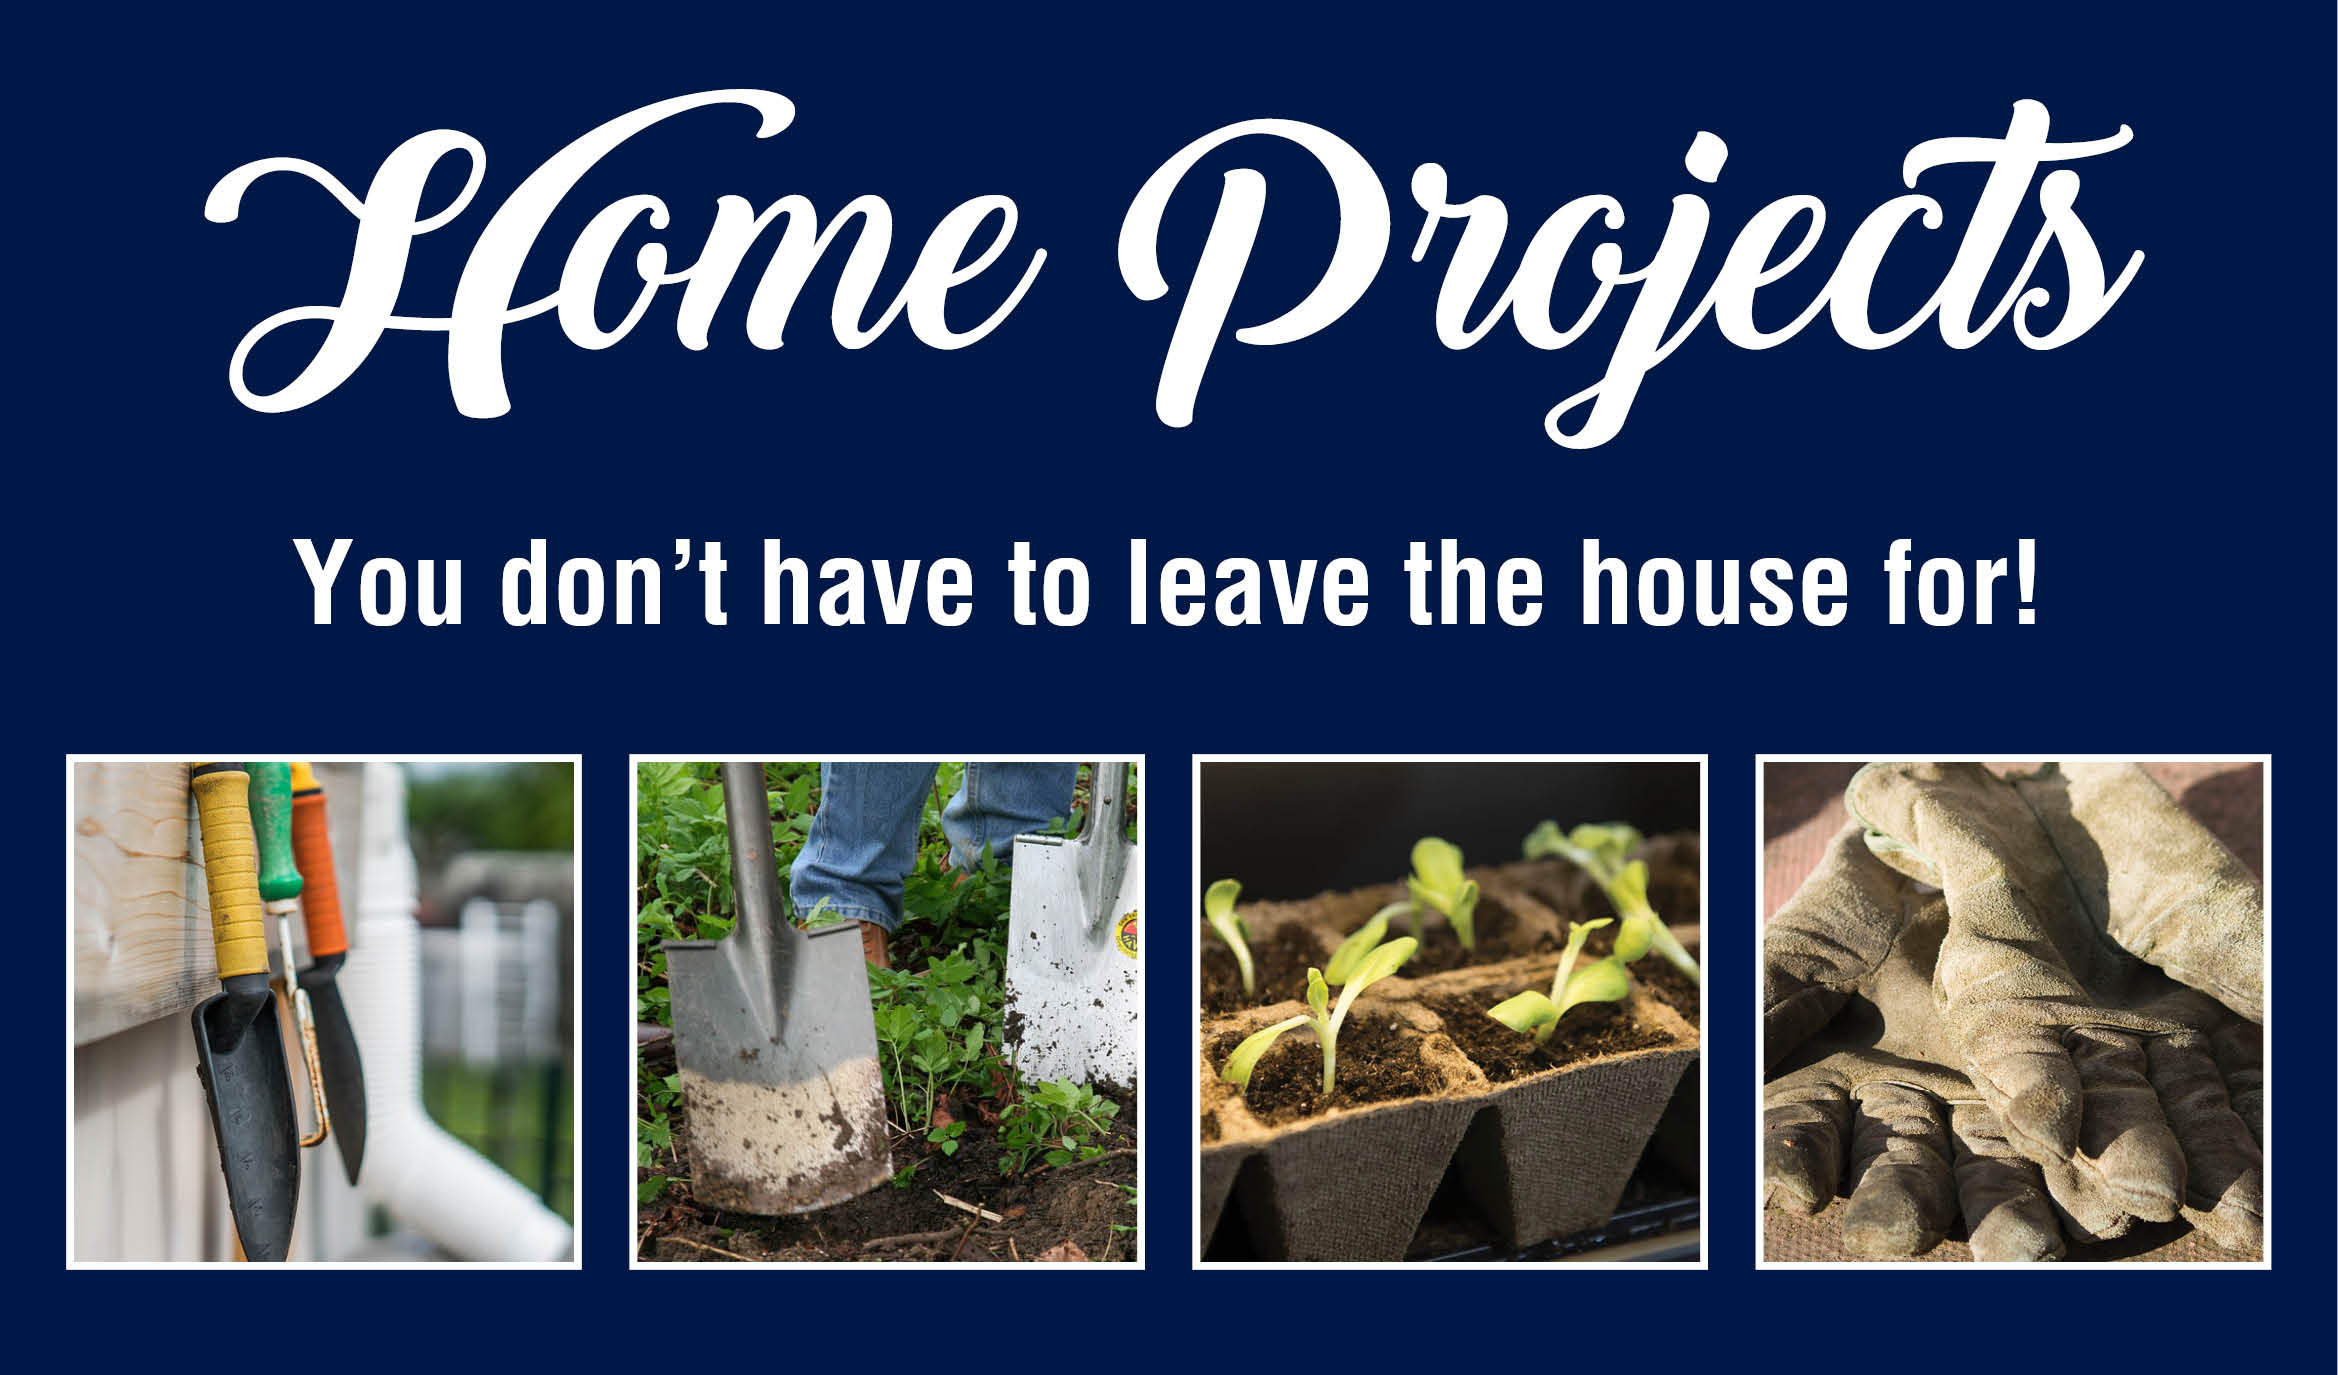 Home Projects You Don't Have to Leave the House For.